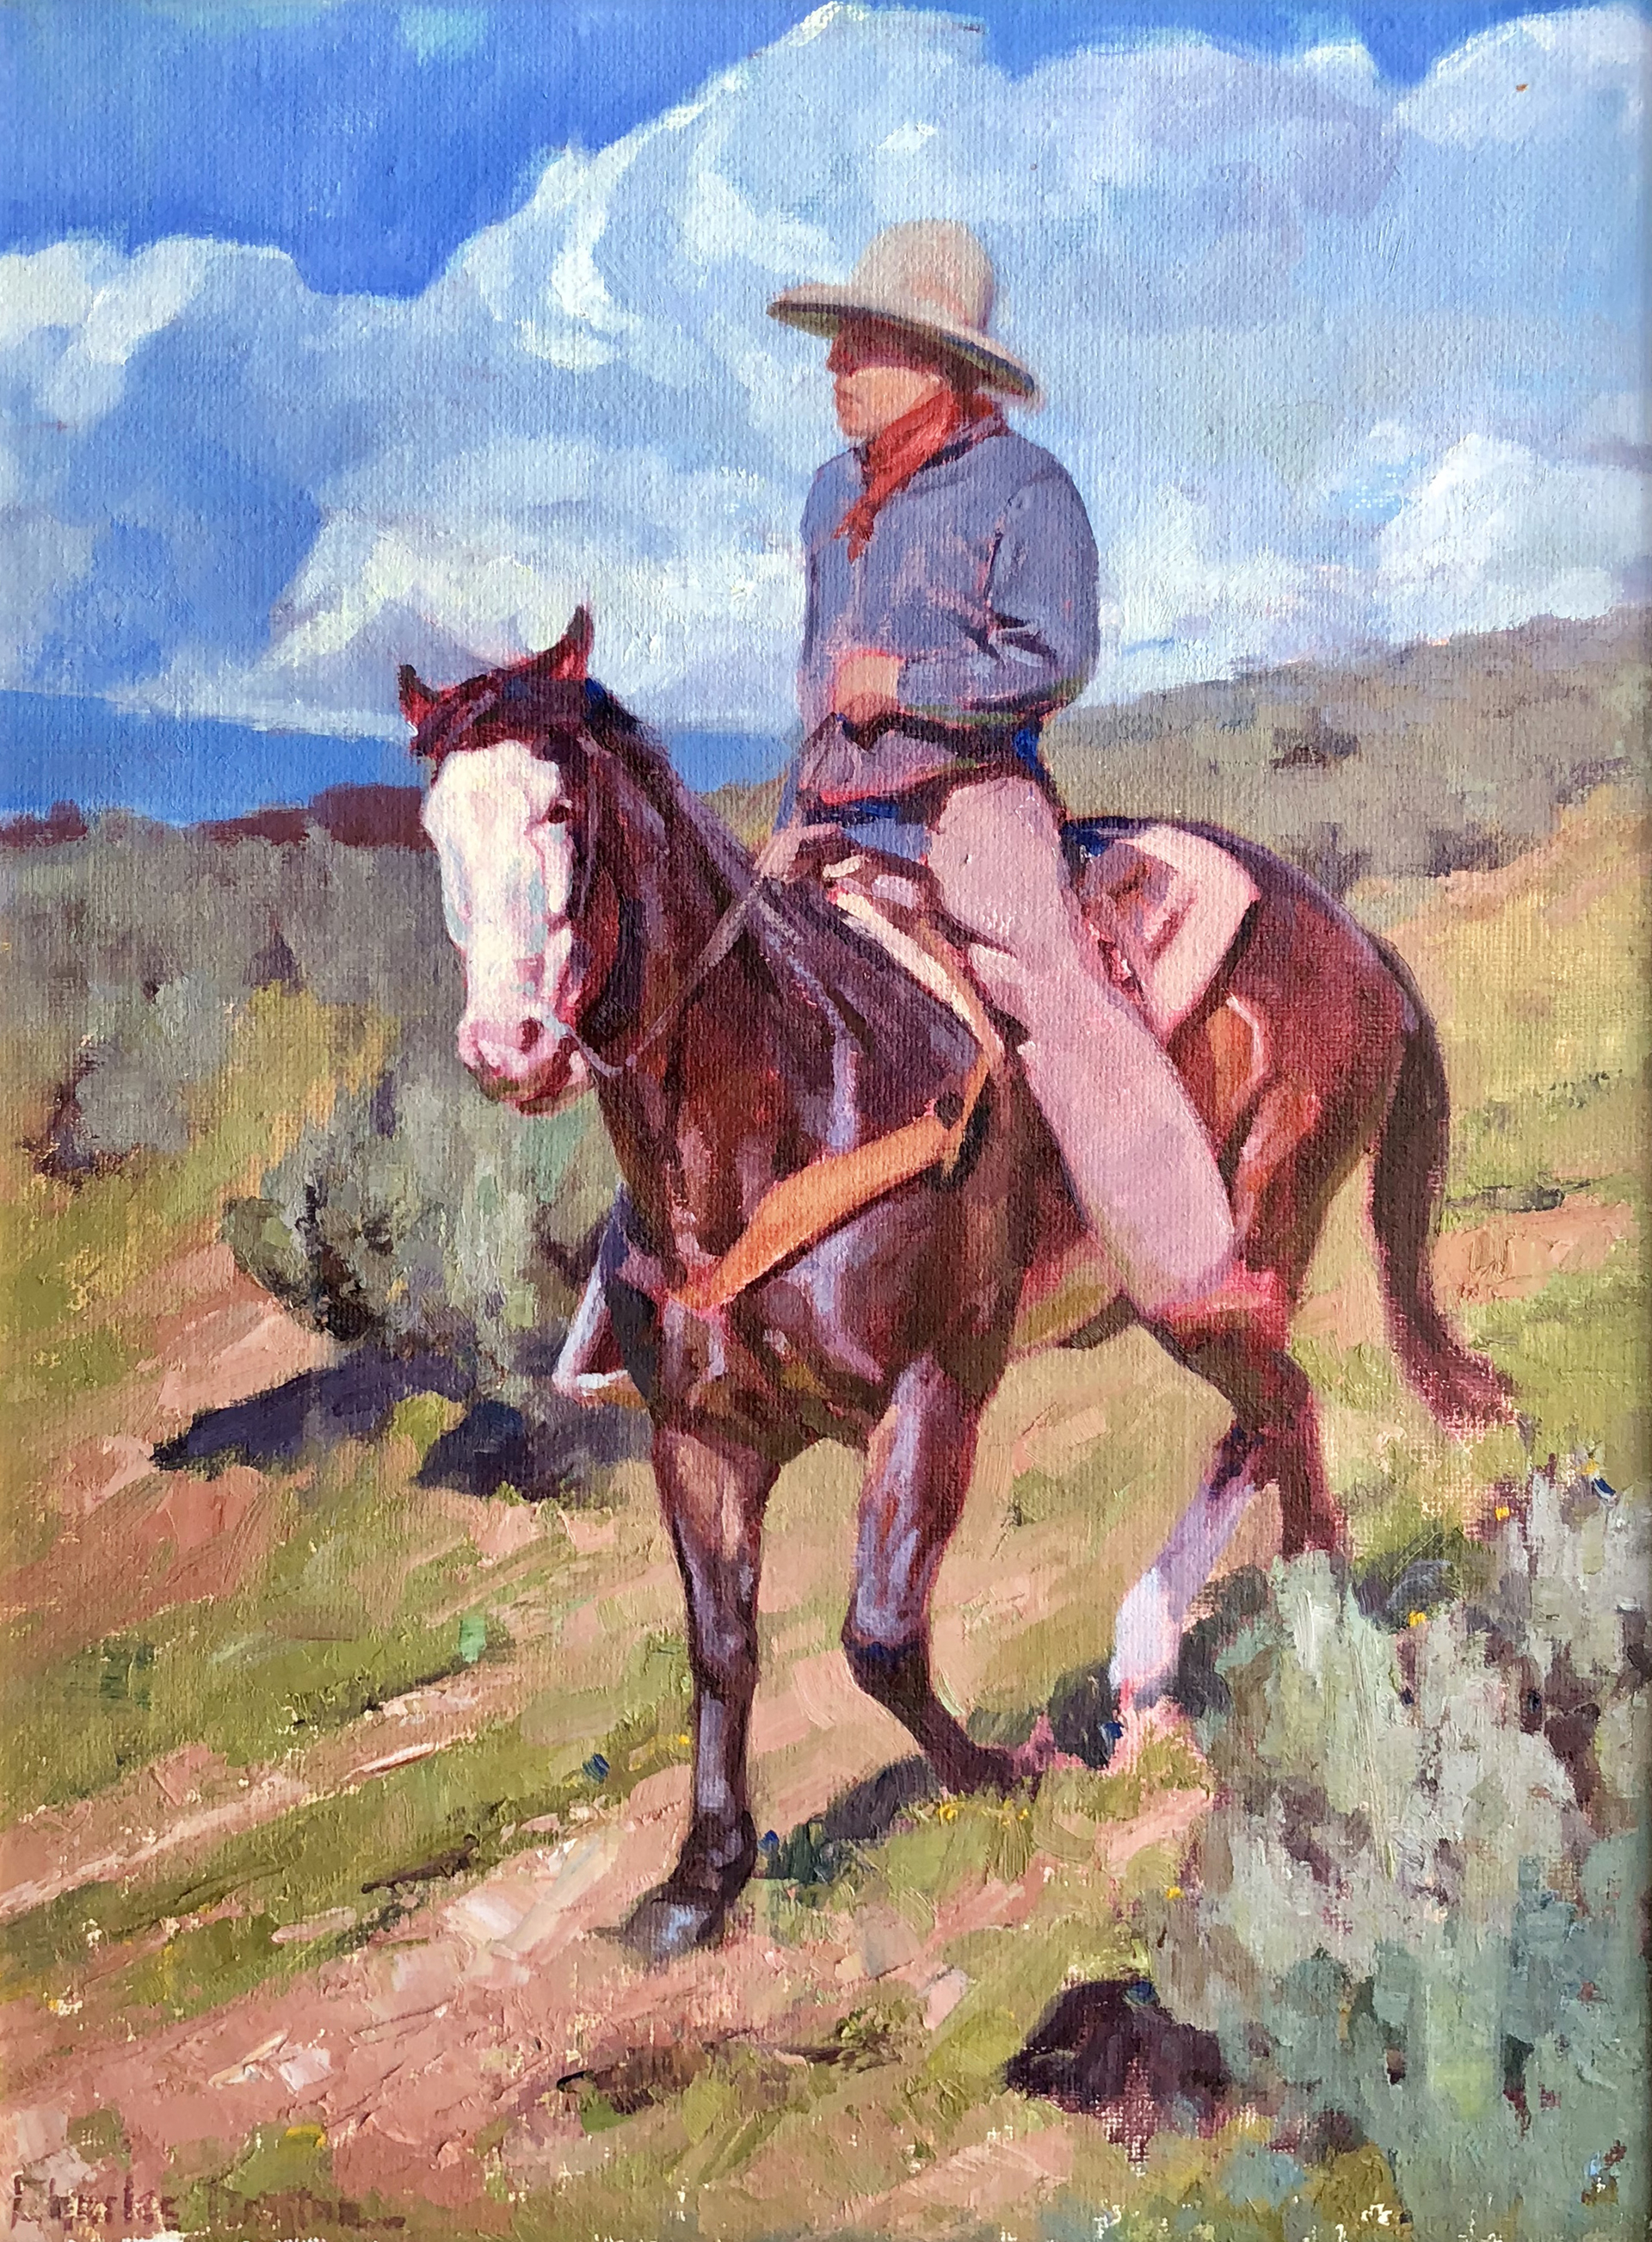 Roping Horse Cowboy on White Horse by Charles Dayton